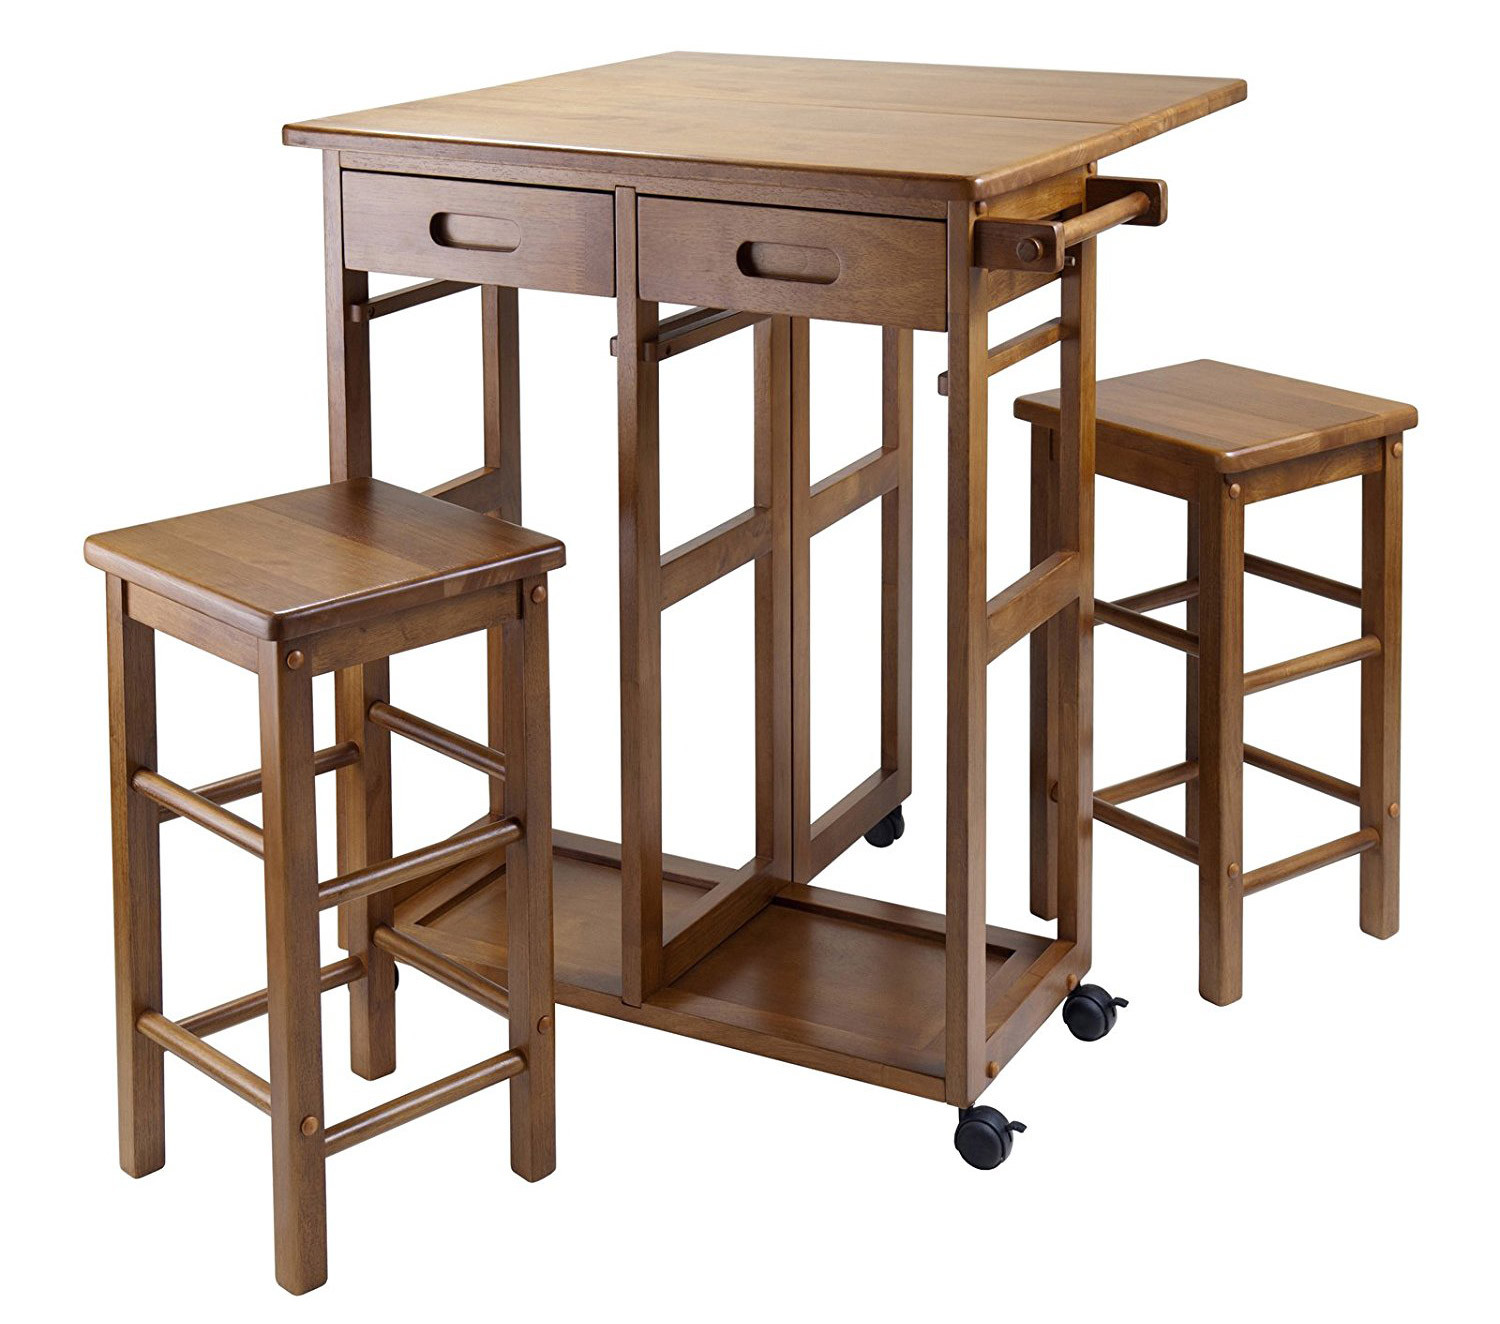 Best ideas about Folding Dining Table . Save or Pin Choose a Folding Dining Table for a Small Space – Adorable Now.